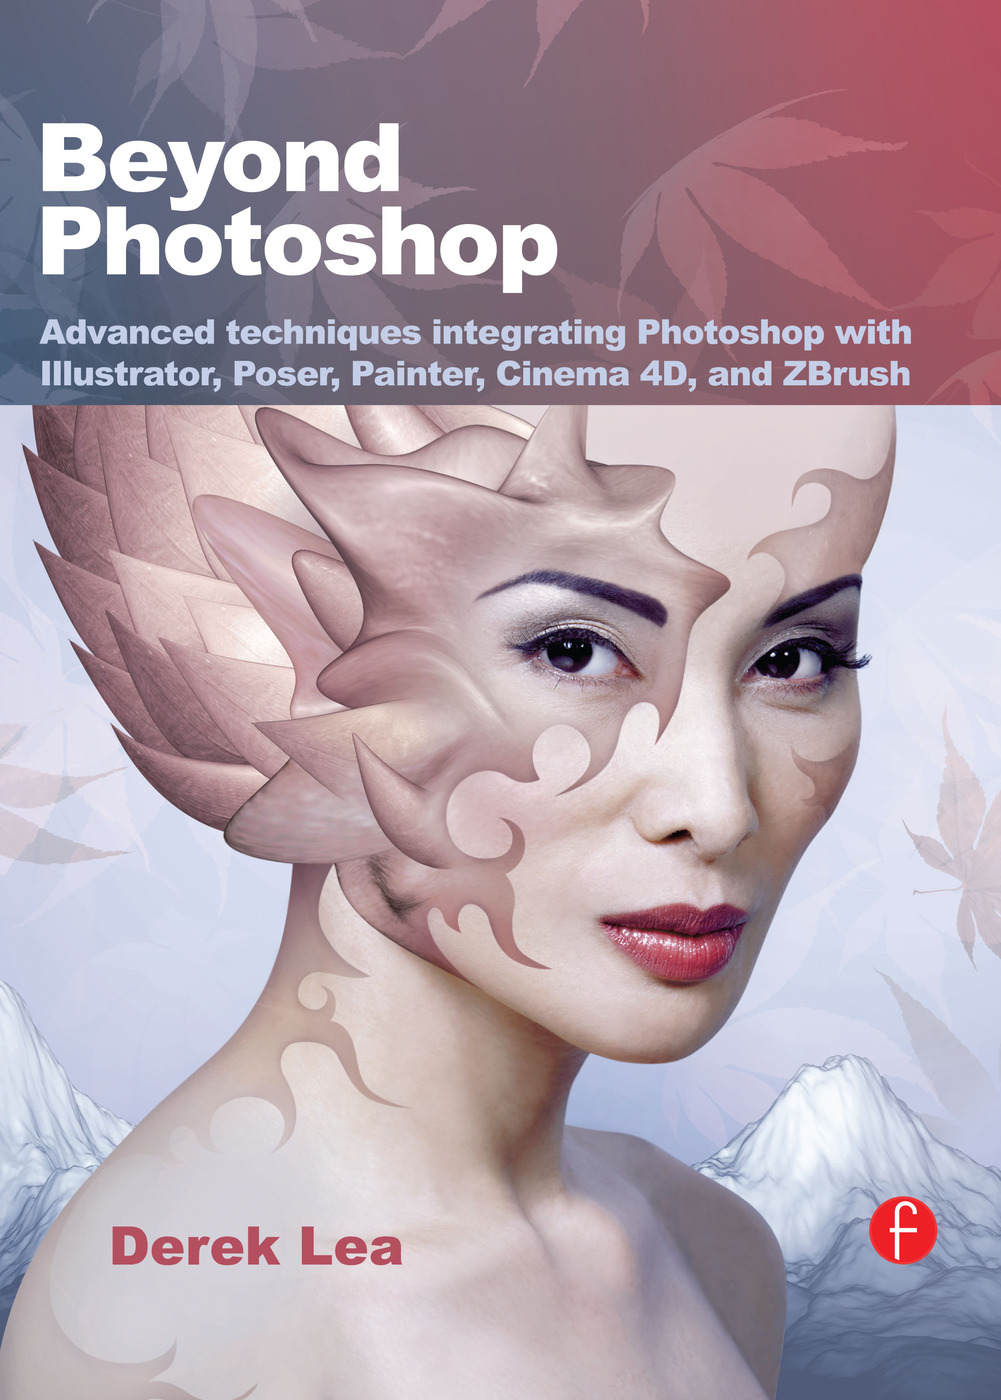 Beyond Photoshop: Advanced techniques integrating Photoshop with Illustrator, Poser, Painter, Cinema 4D and ZBrush book cover